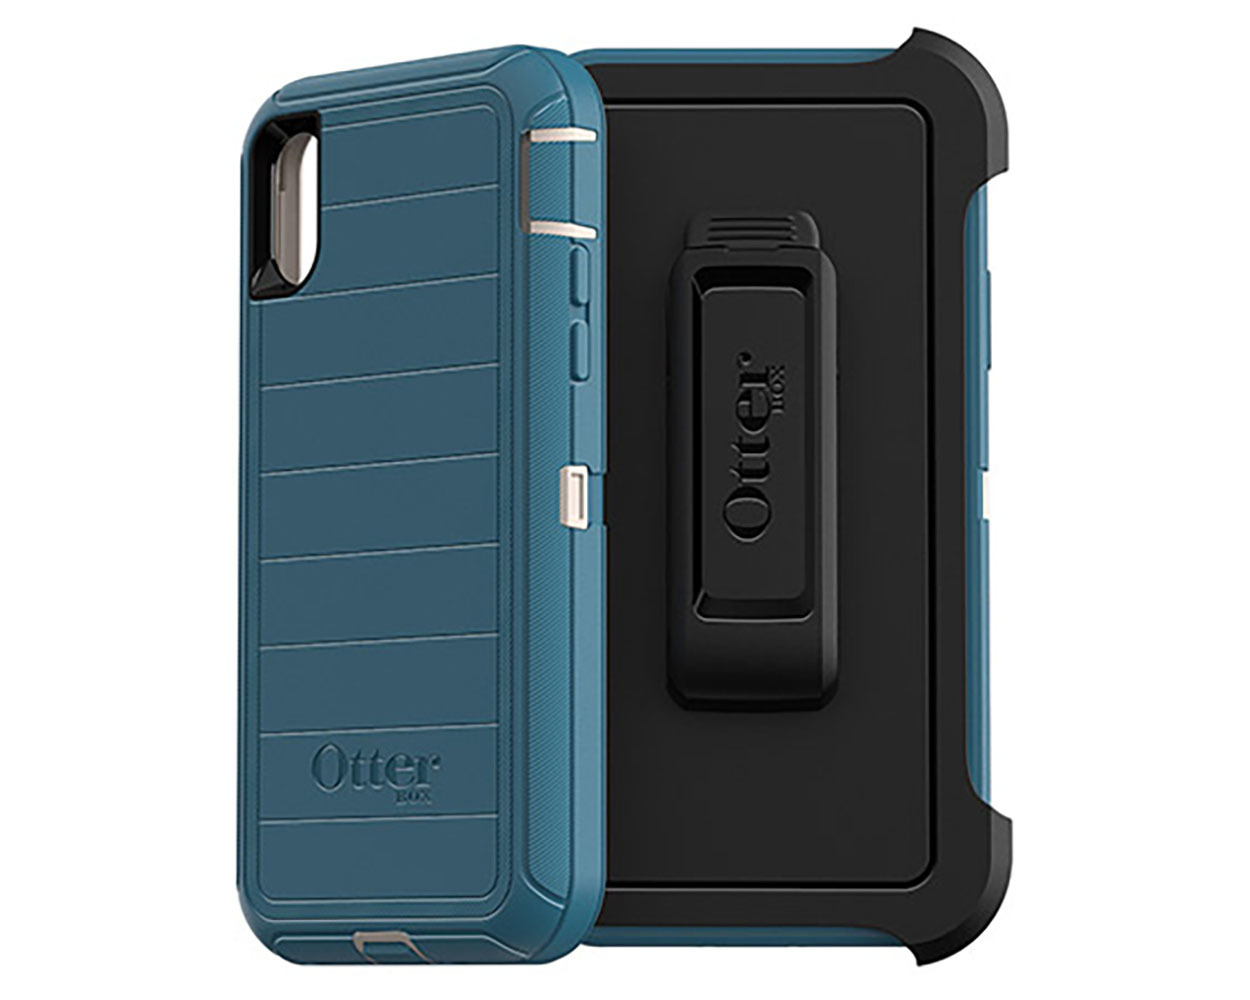 OtterBox Defender case for iPhone XS